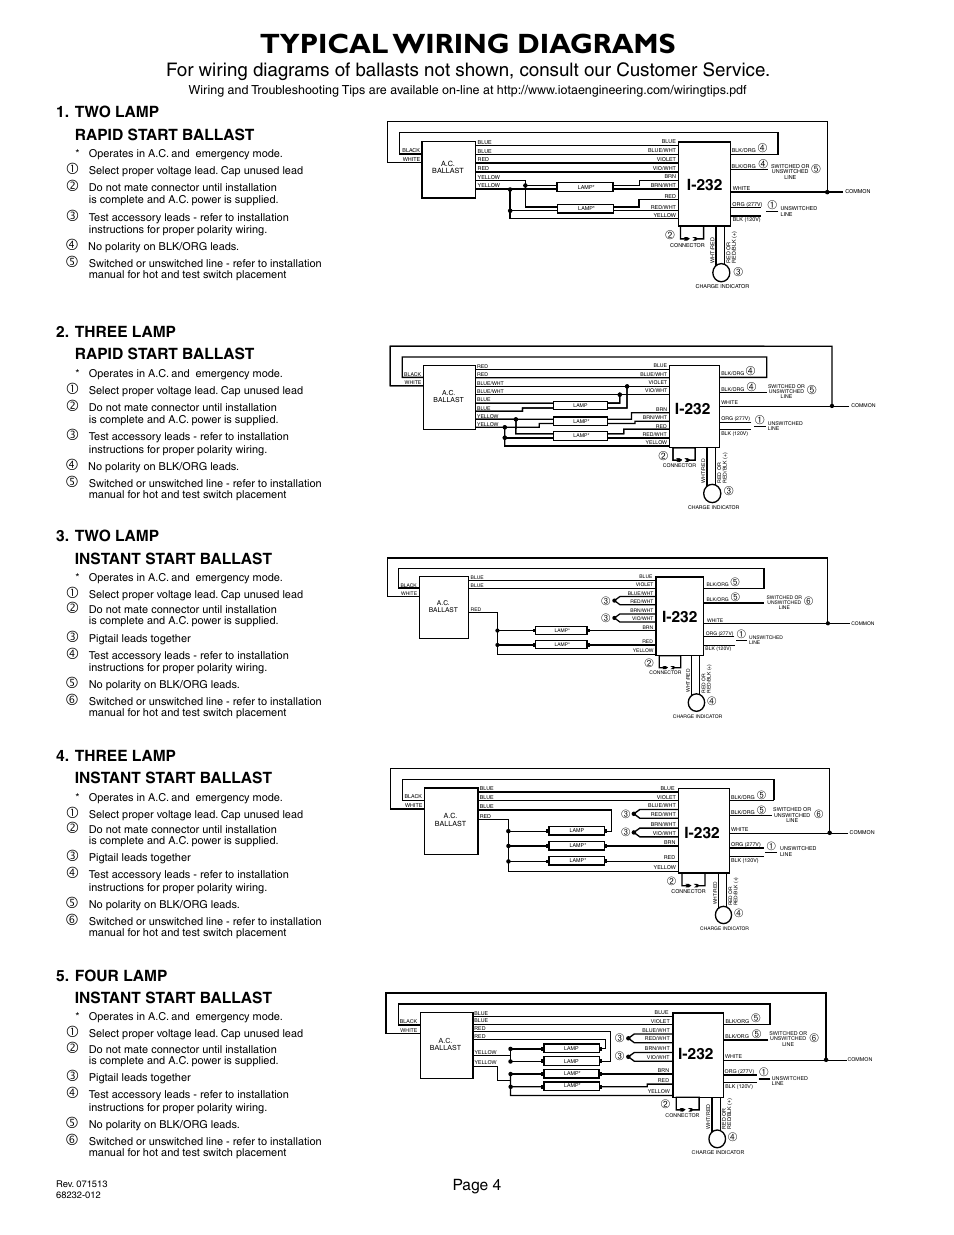 iota i 232 page4?resize=840%2C1087 iota emergency ballast wiring diagram periodic & diagrams science iota i32 emergency ballast wiring diagram at gsmx.co